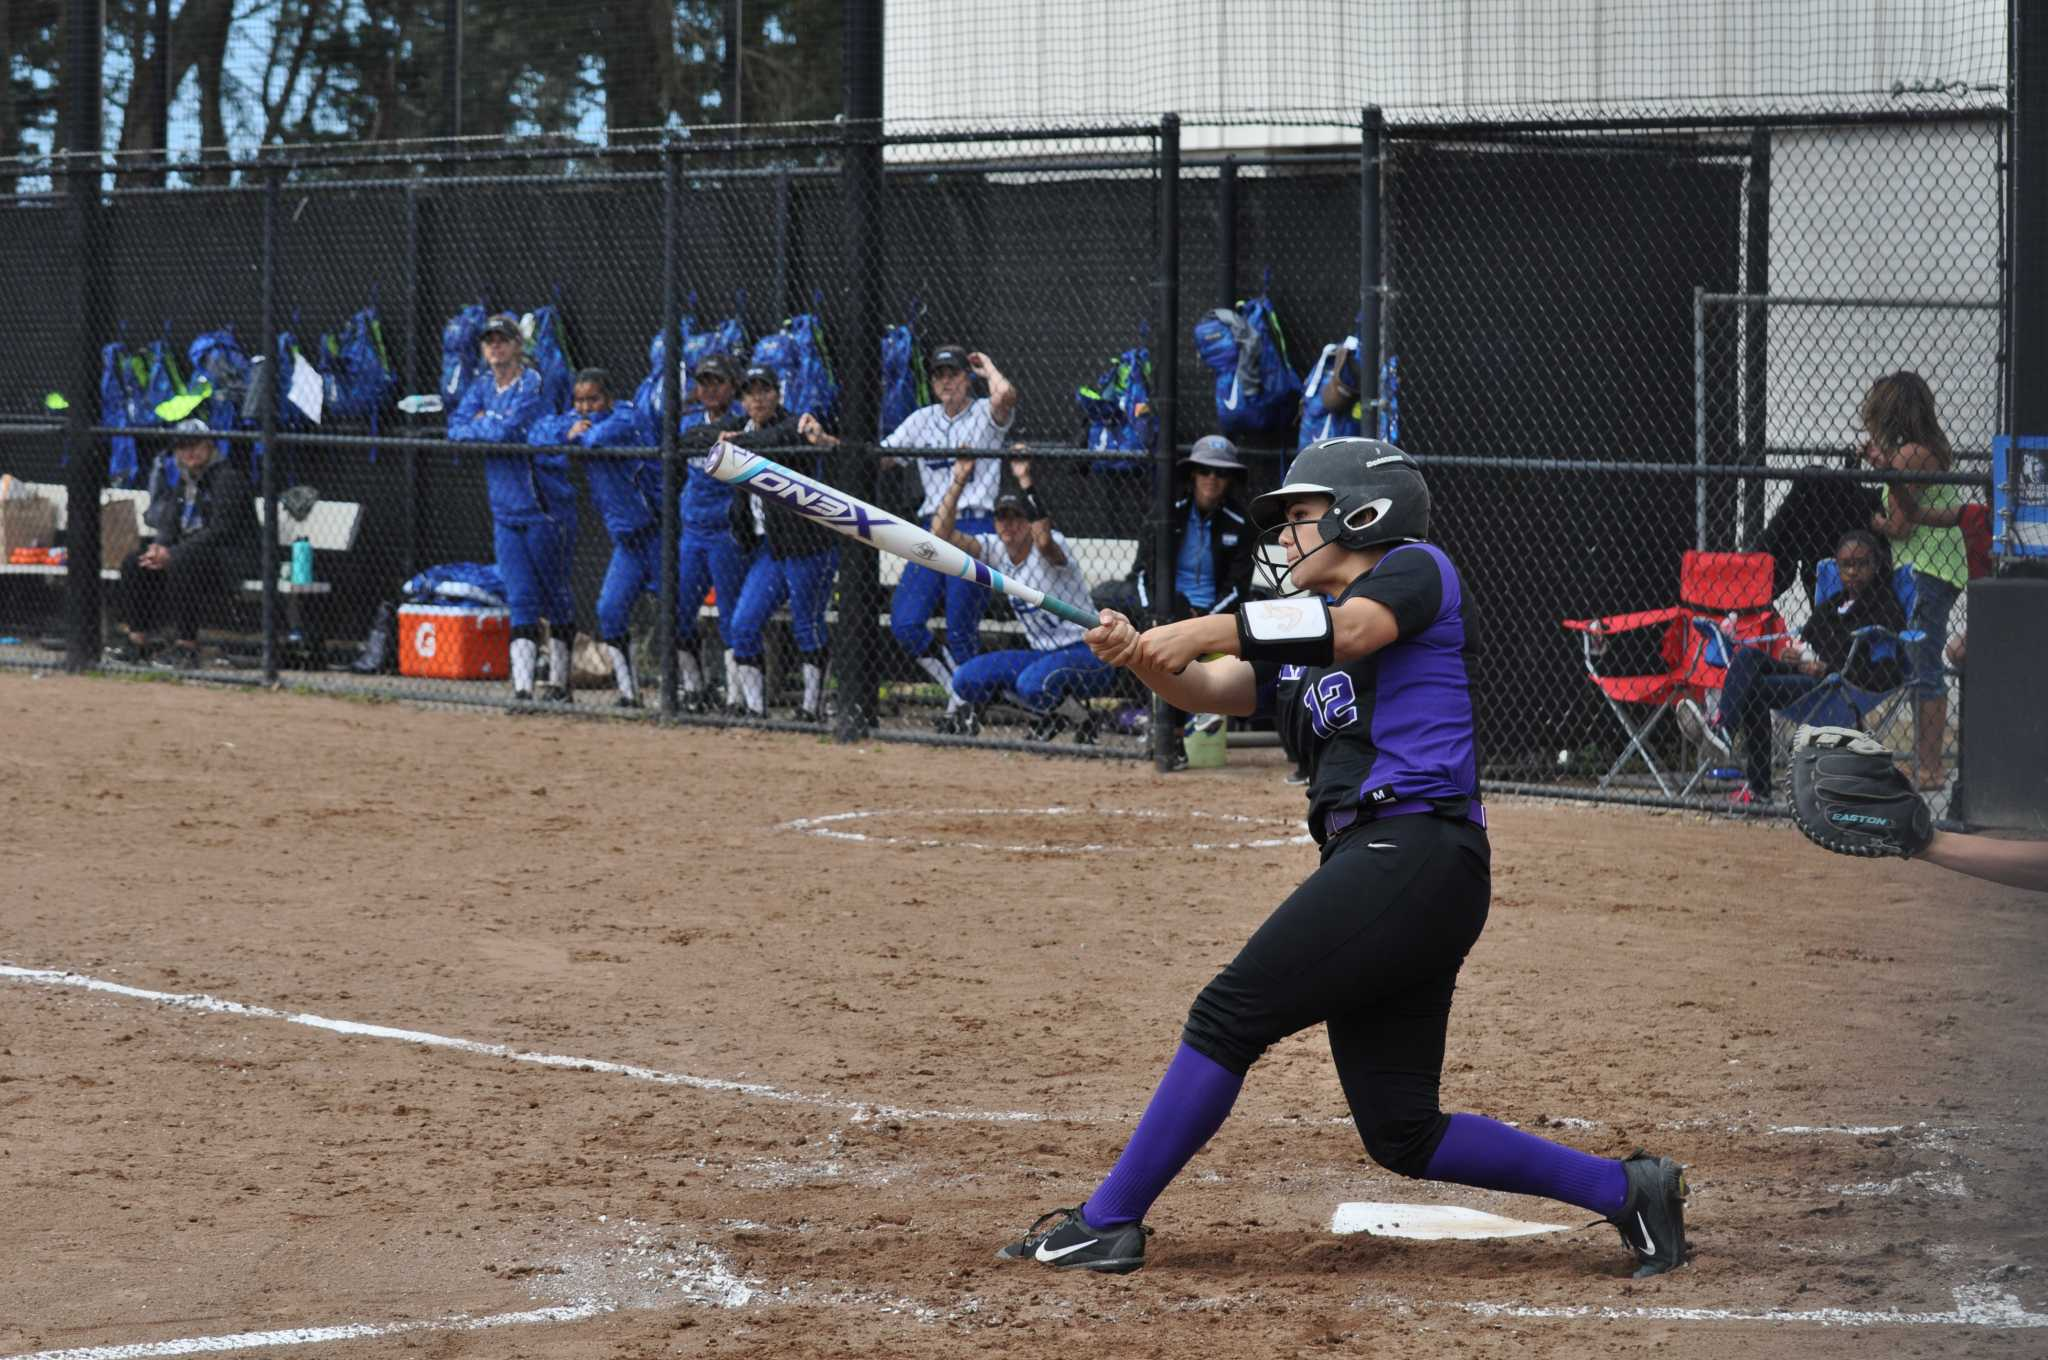 Junior catcher Celeste Adriano sends a ball into the outfield for a single against California State University San Marcos on Sat., March 12 in San Francisco, Calif. (Renee Smith/Xpress)